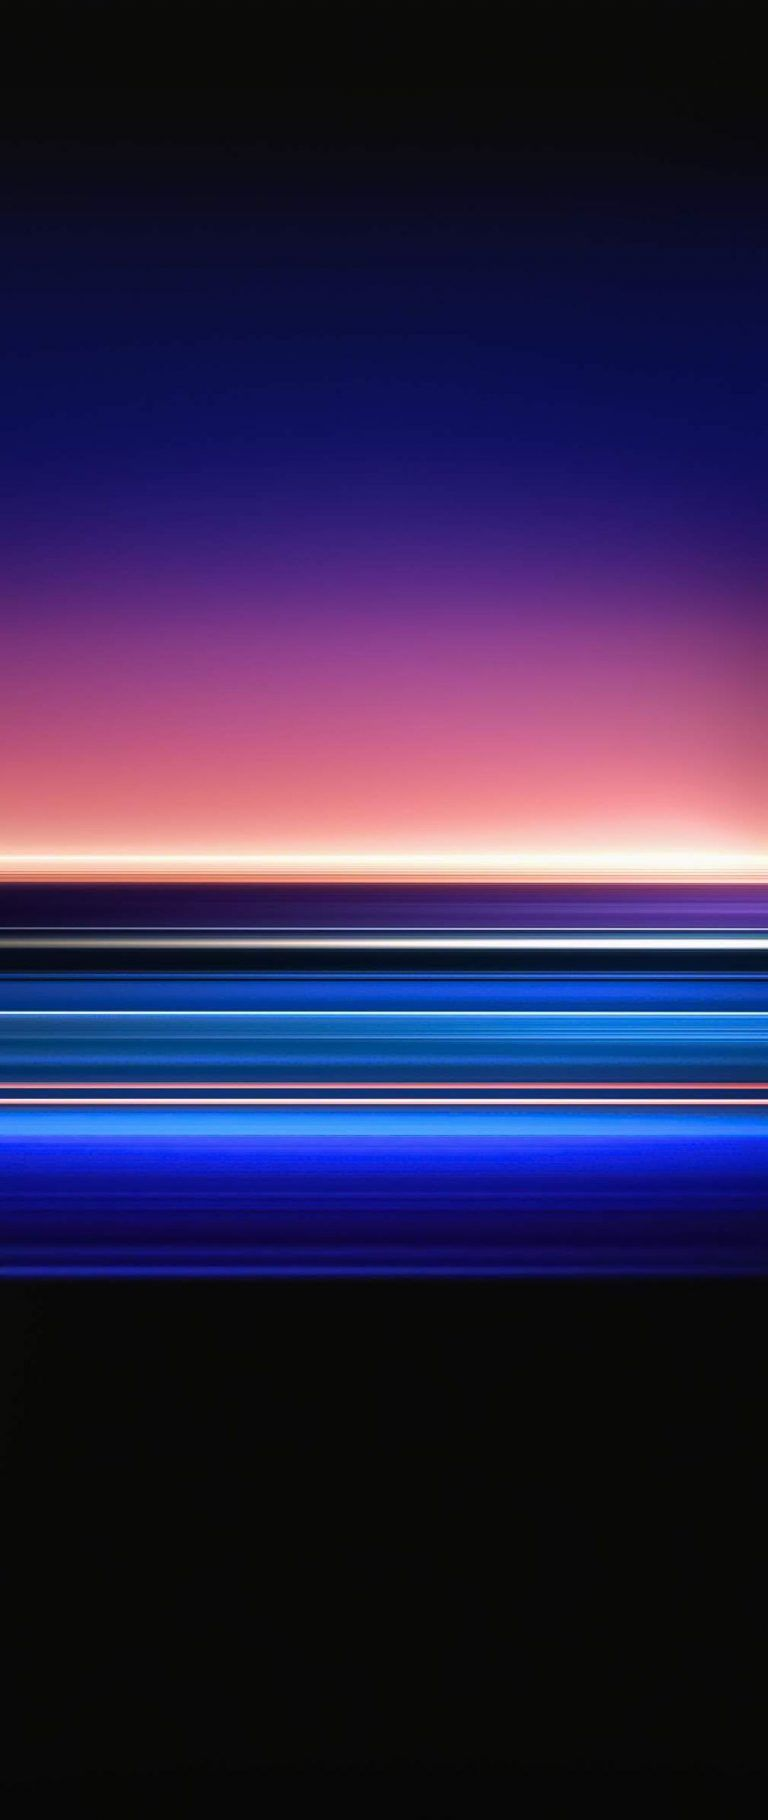 Sony Xperia 5 Stock Wallpapers Xperia Wallpaper Stock Wallpaper Sony Xperia